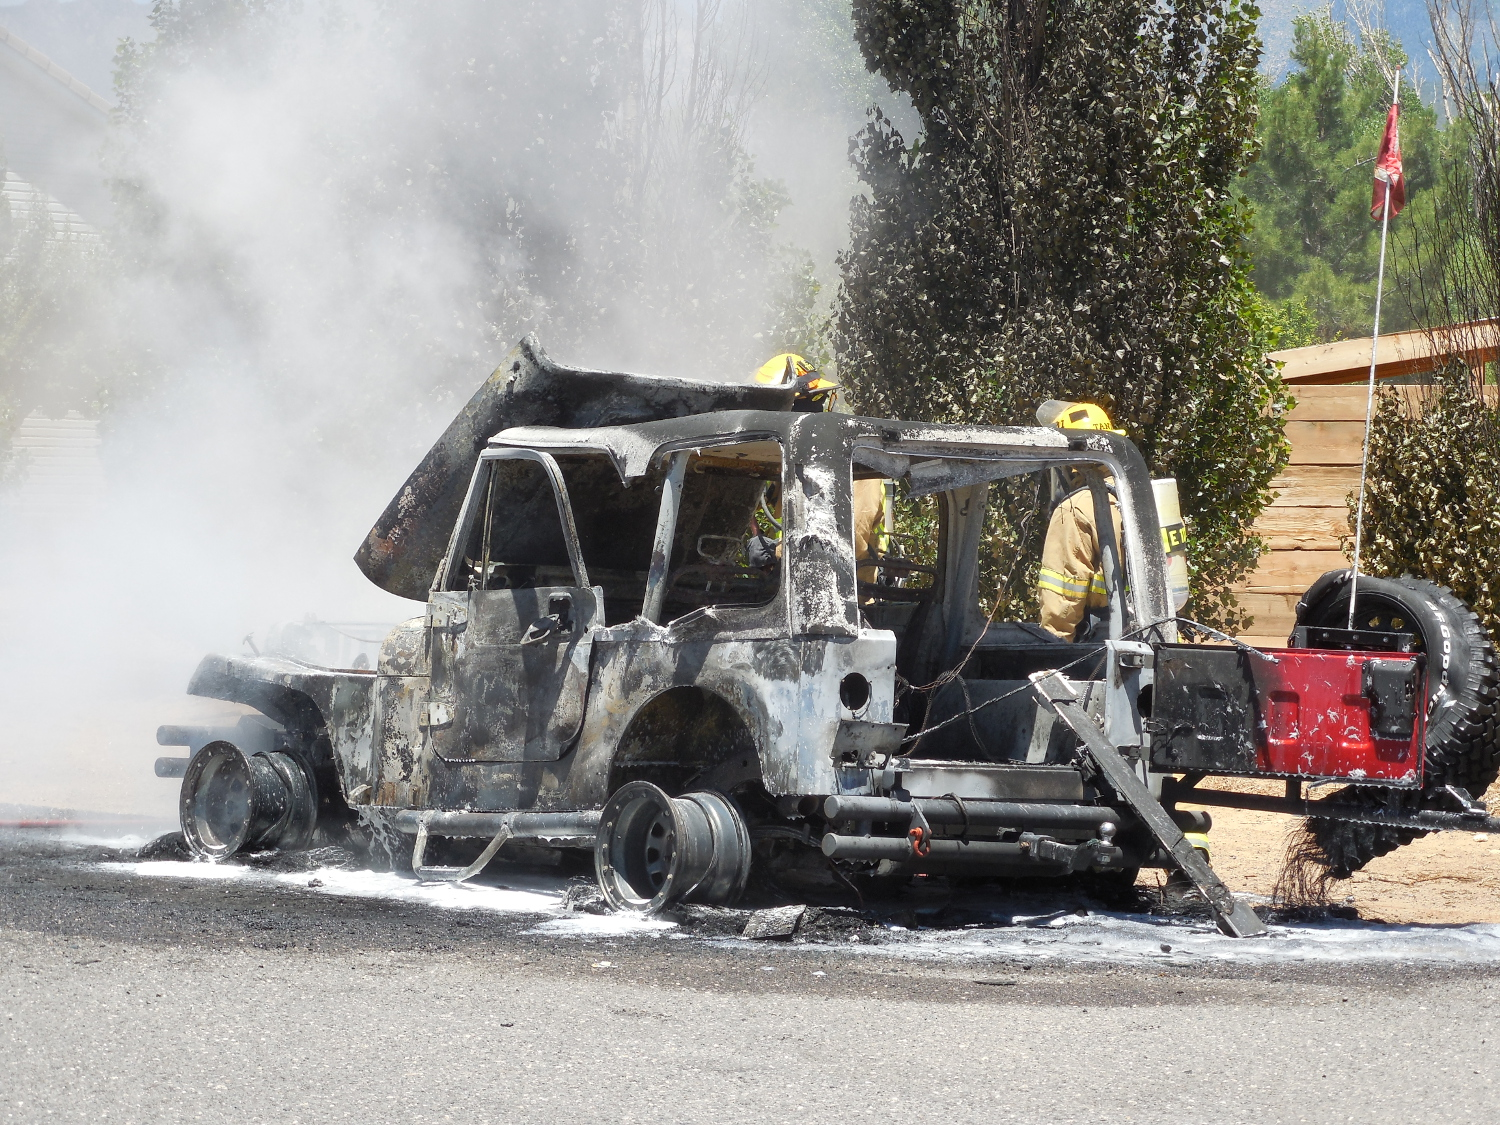 A Jeep burns in Diamond Valley Friday afternoon, Diamond Valley, Utah, June 17, 2017   Photo by Julie Applegate, St. George News